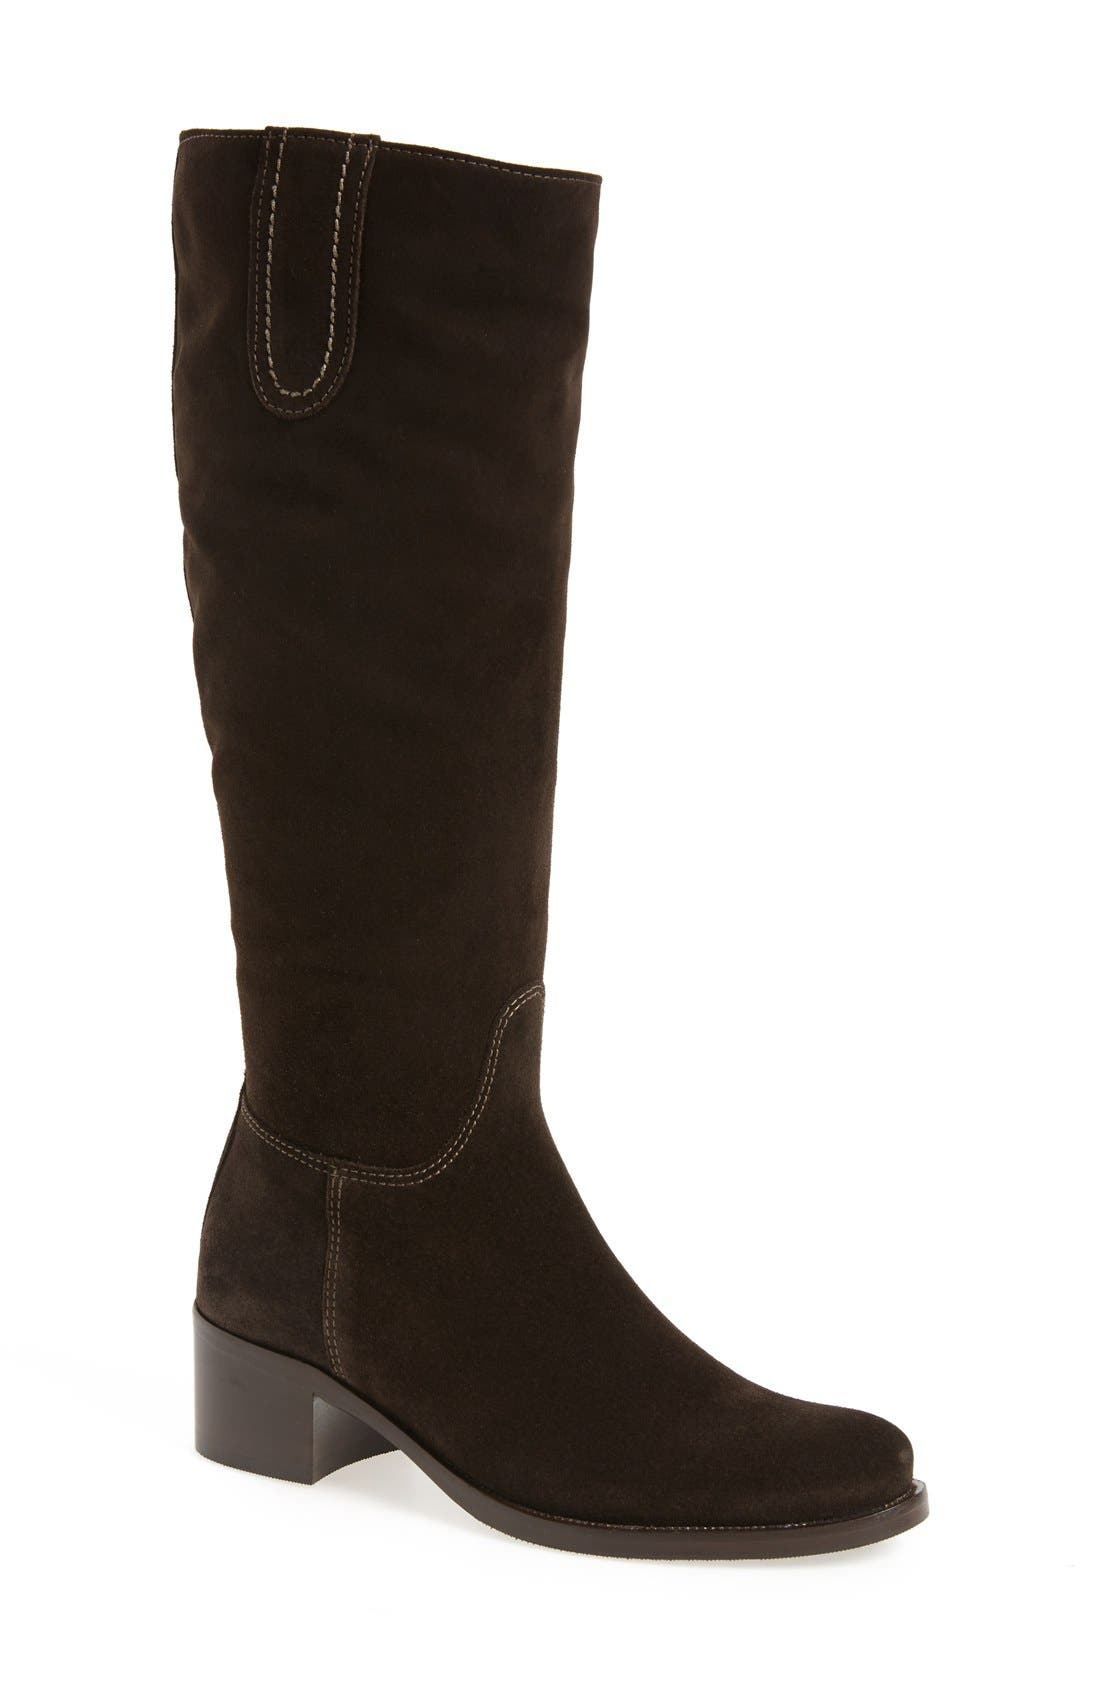 La Canadienne 'Polly' Waterproof Knee High Boot (Women)